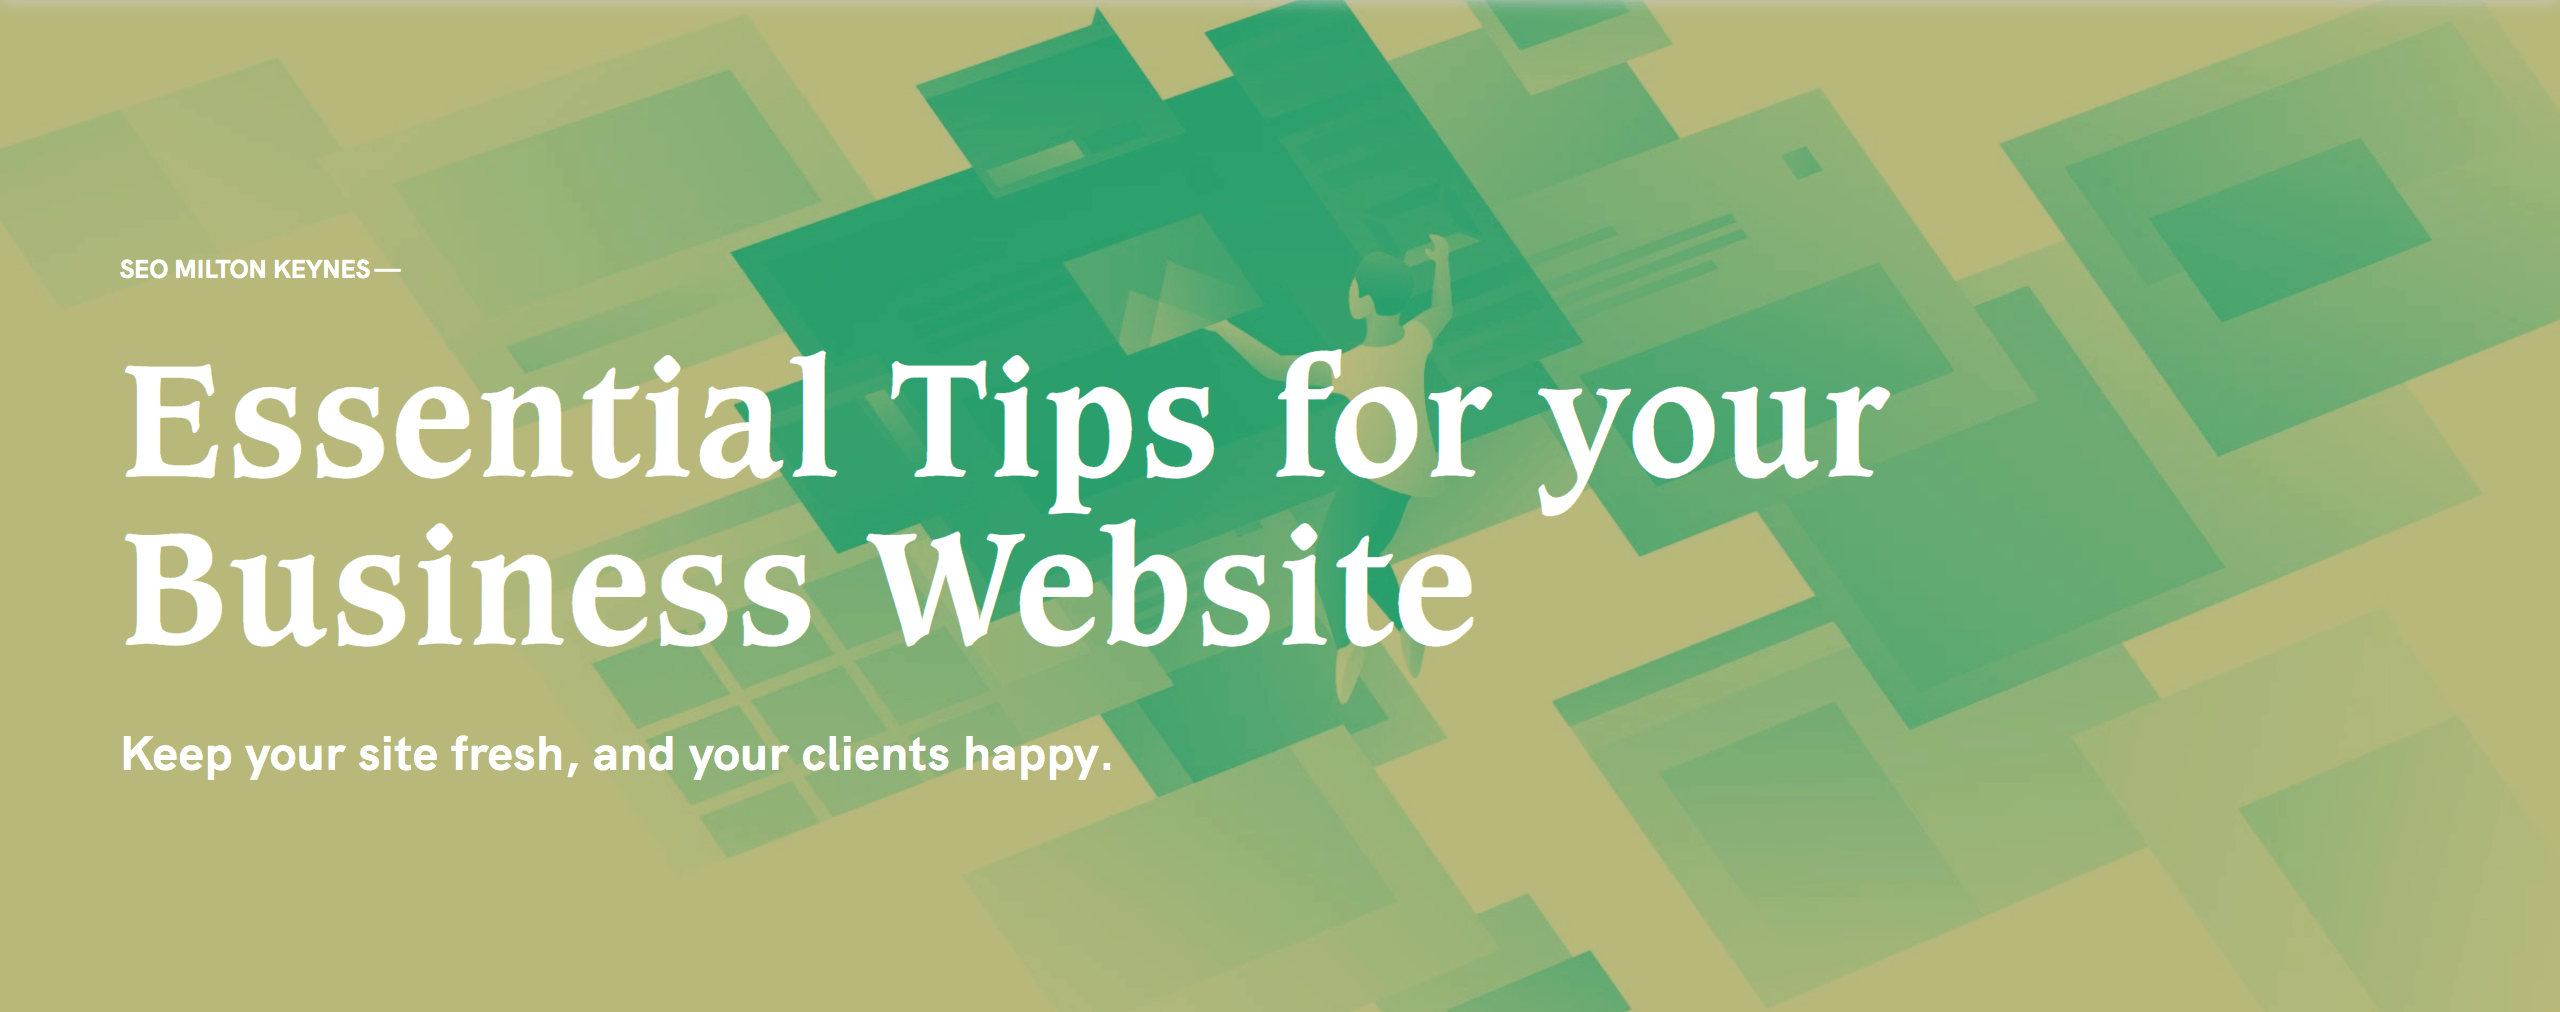 essential tips for your business website